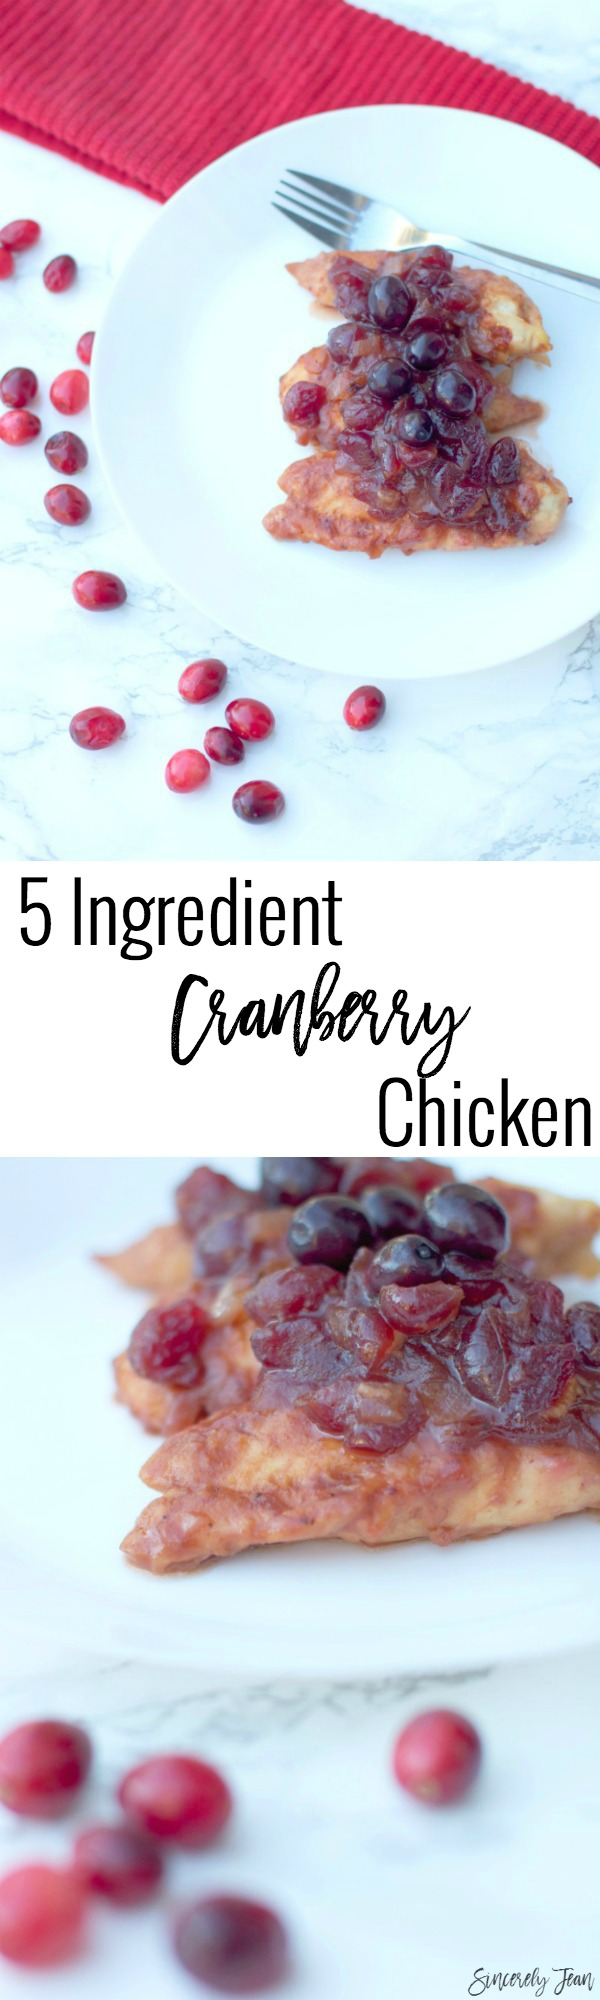 Five ingredient Cranberry Chicken - perfect for the holidays! By SincerelyJean.com, Your home for 5 ingredient recipes